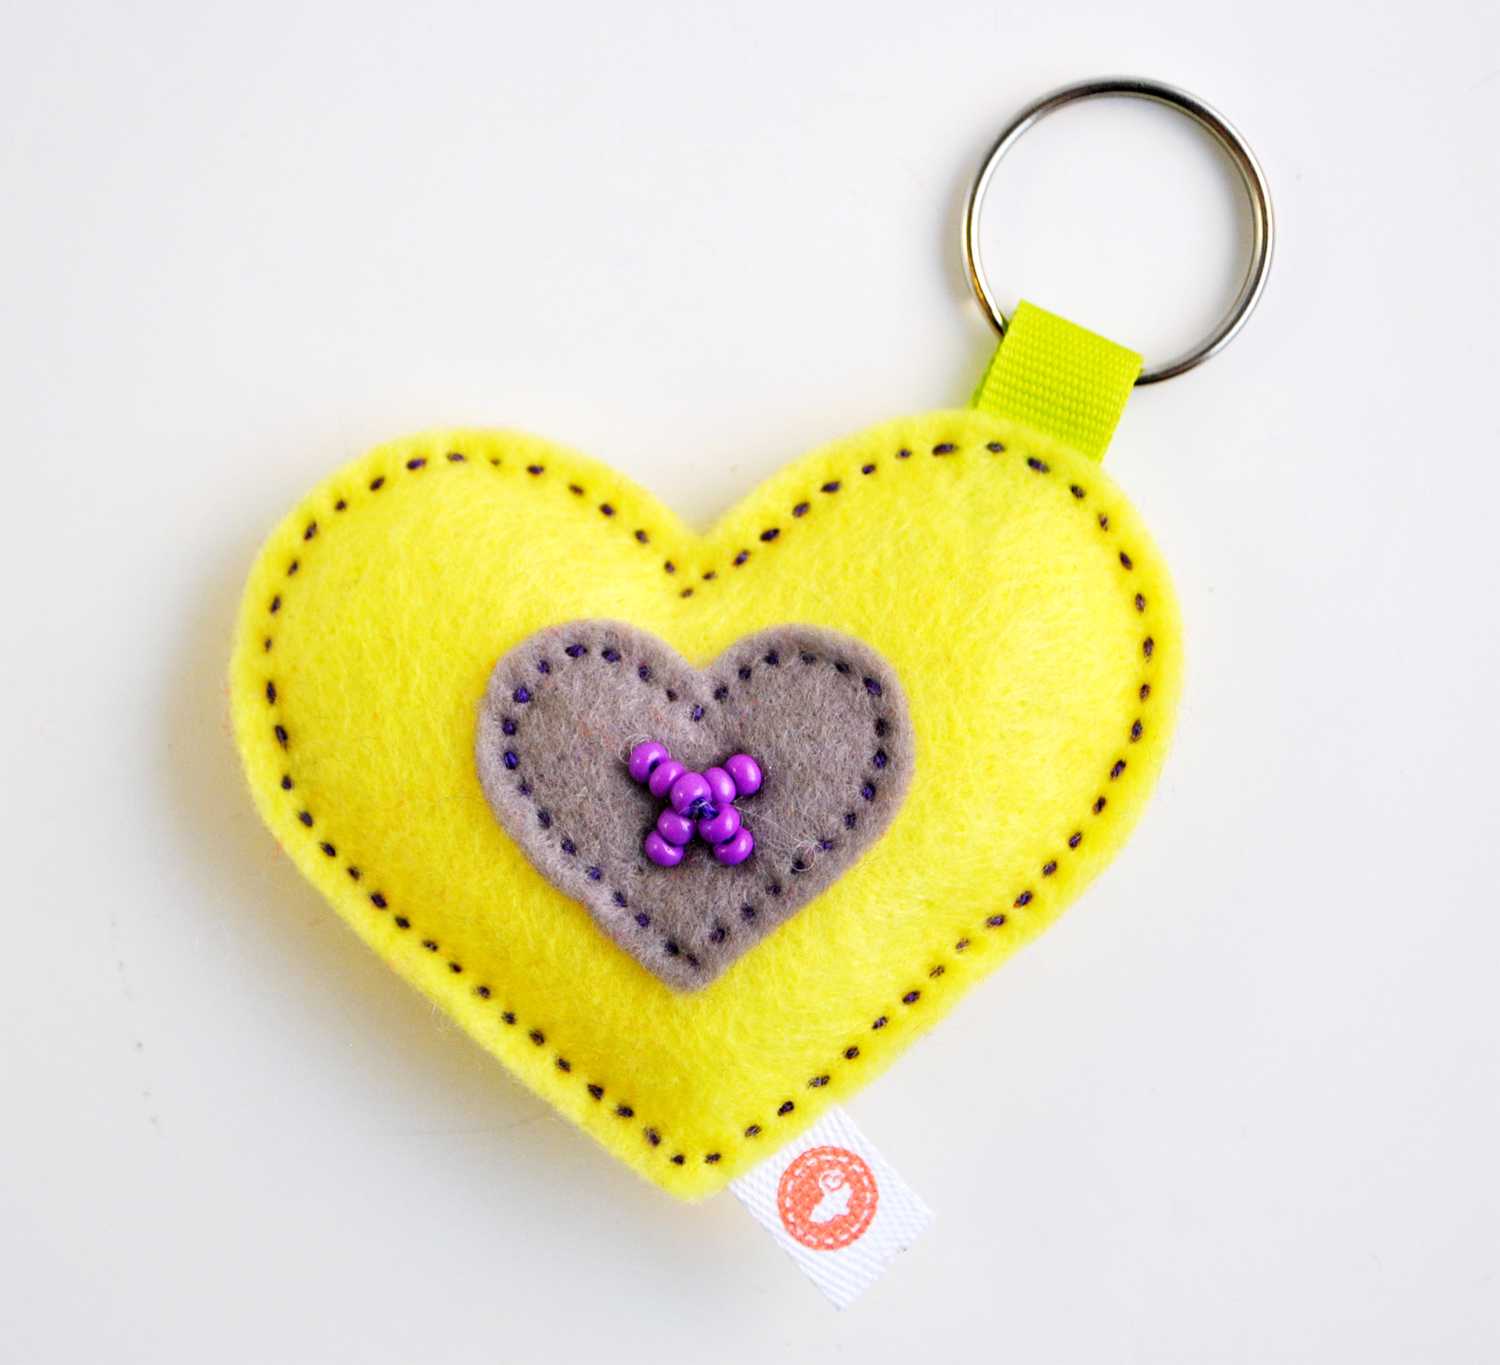 Heart Key Ring Ribbon.jpg